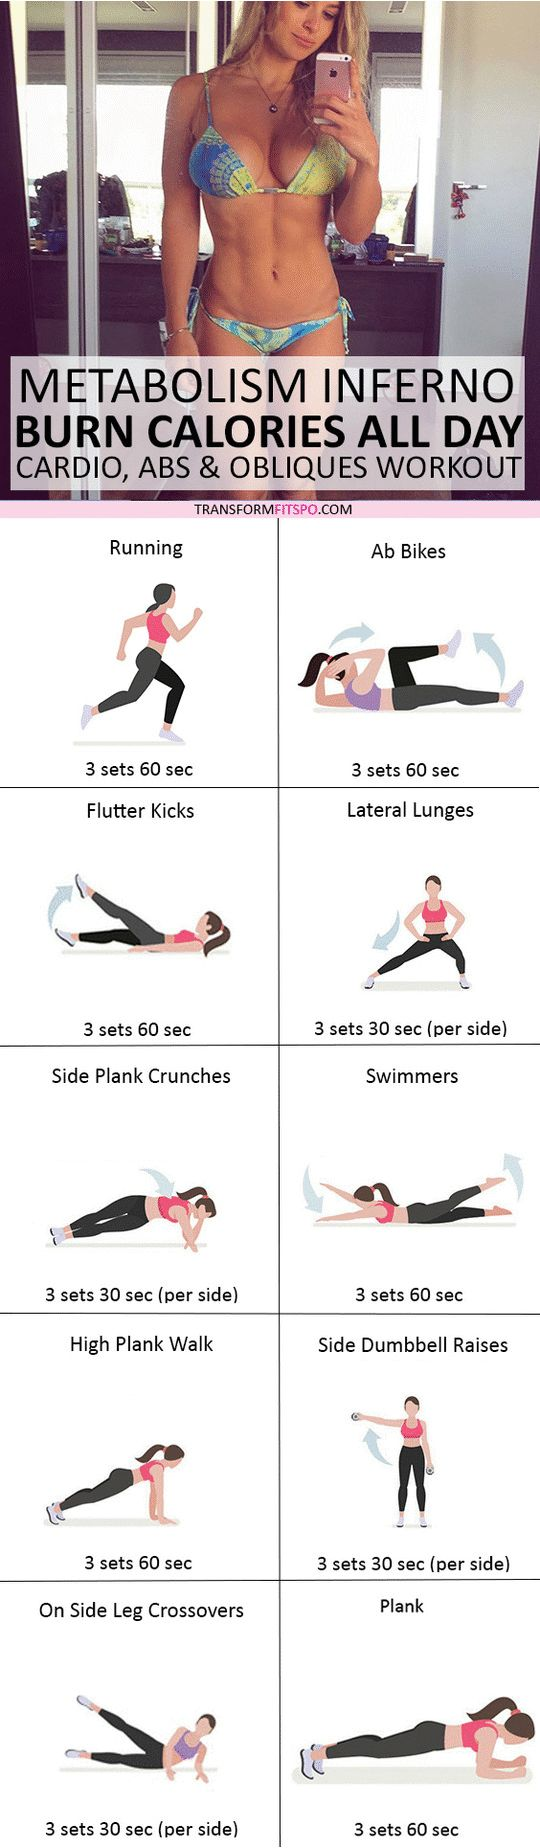 #womensworkout #workout #femalefitness Repin and share if this workout turned you into a calorie furnace! Click the pin for the full workout.